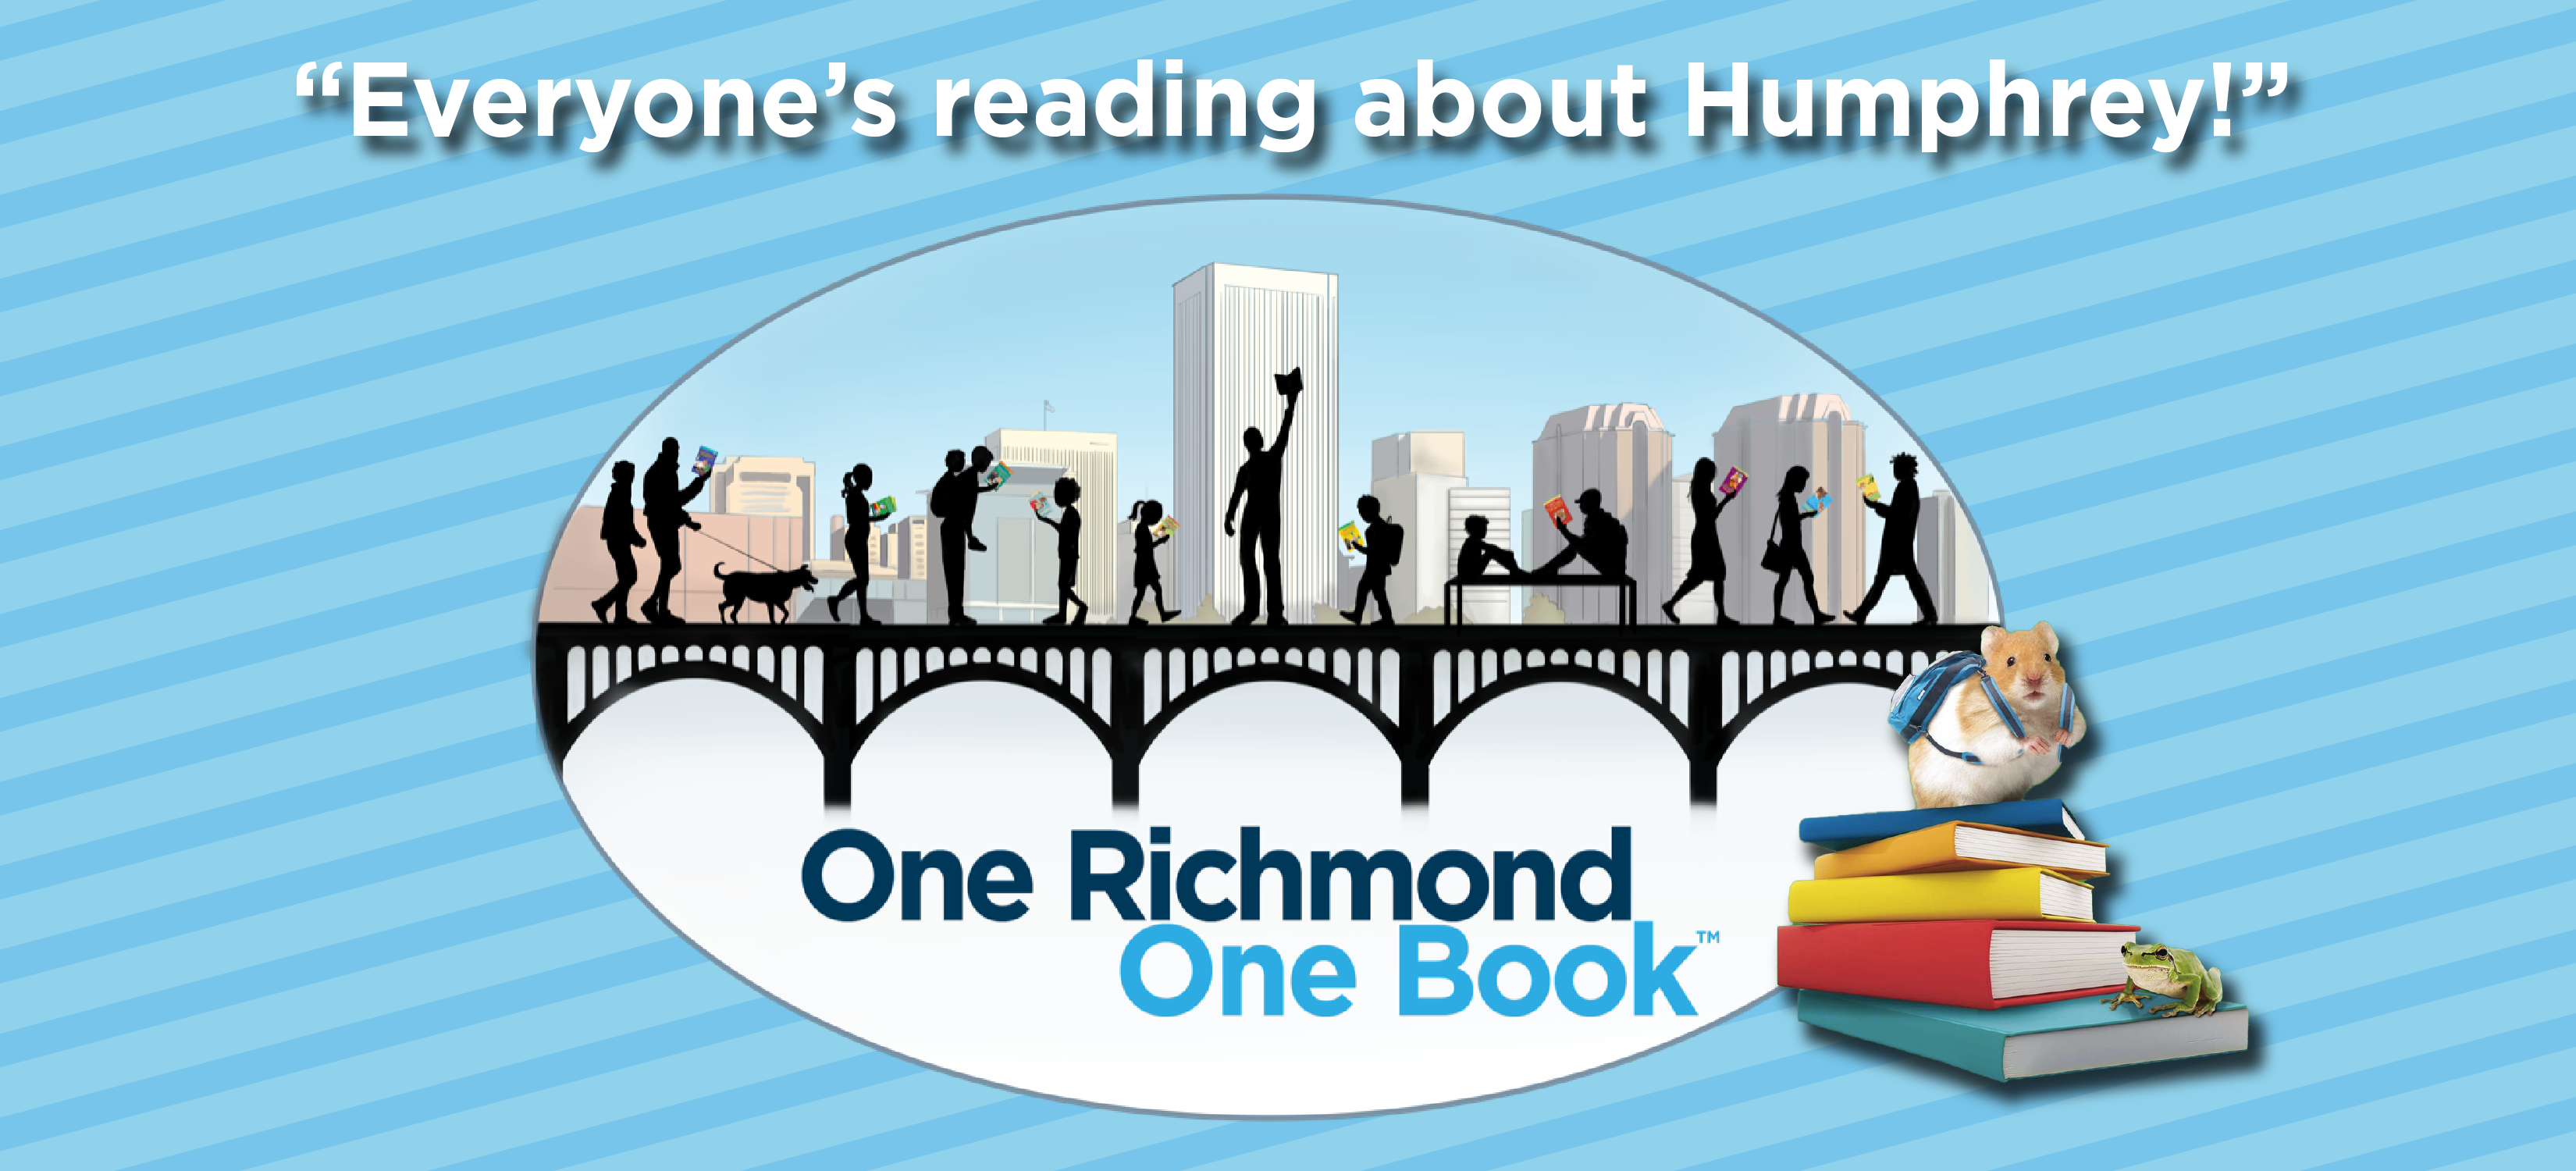 POSTPONED DUE TO SCHOOL CLOSINGS One Richmond One Book Family Event  Friendship According To Humprey -Friendship Bracelets